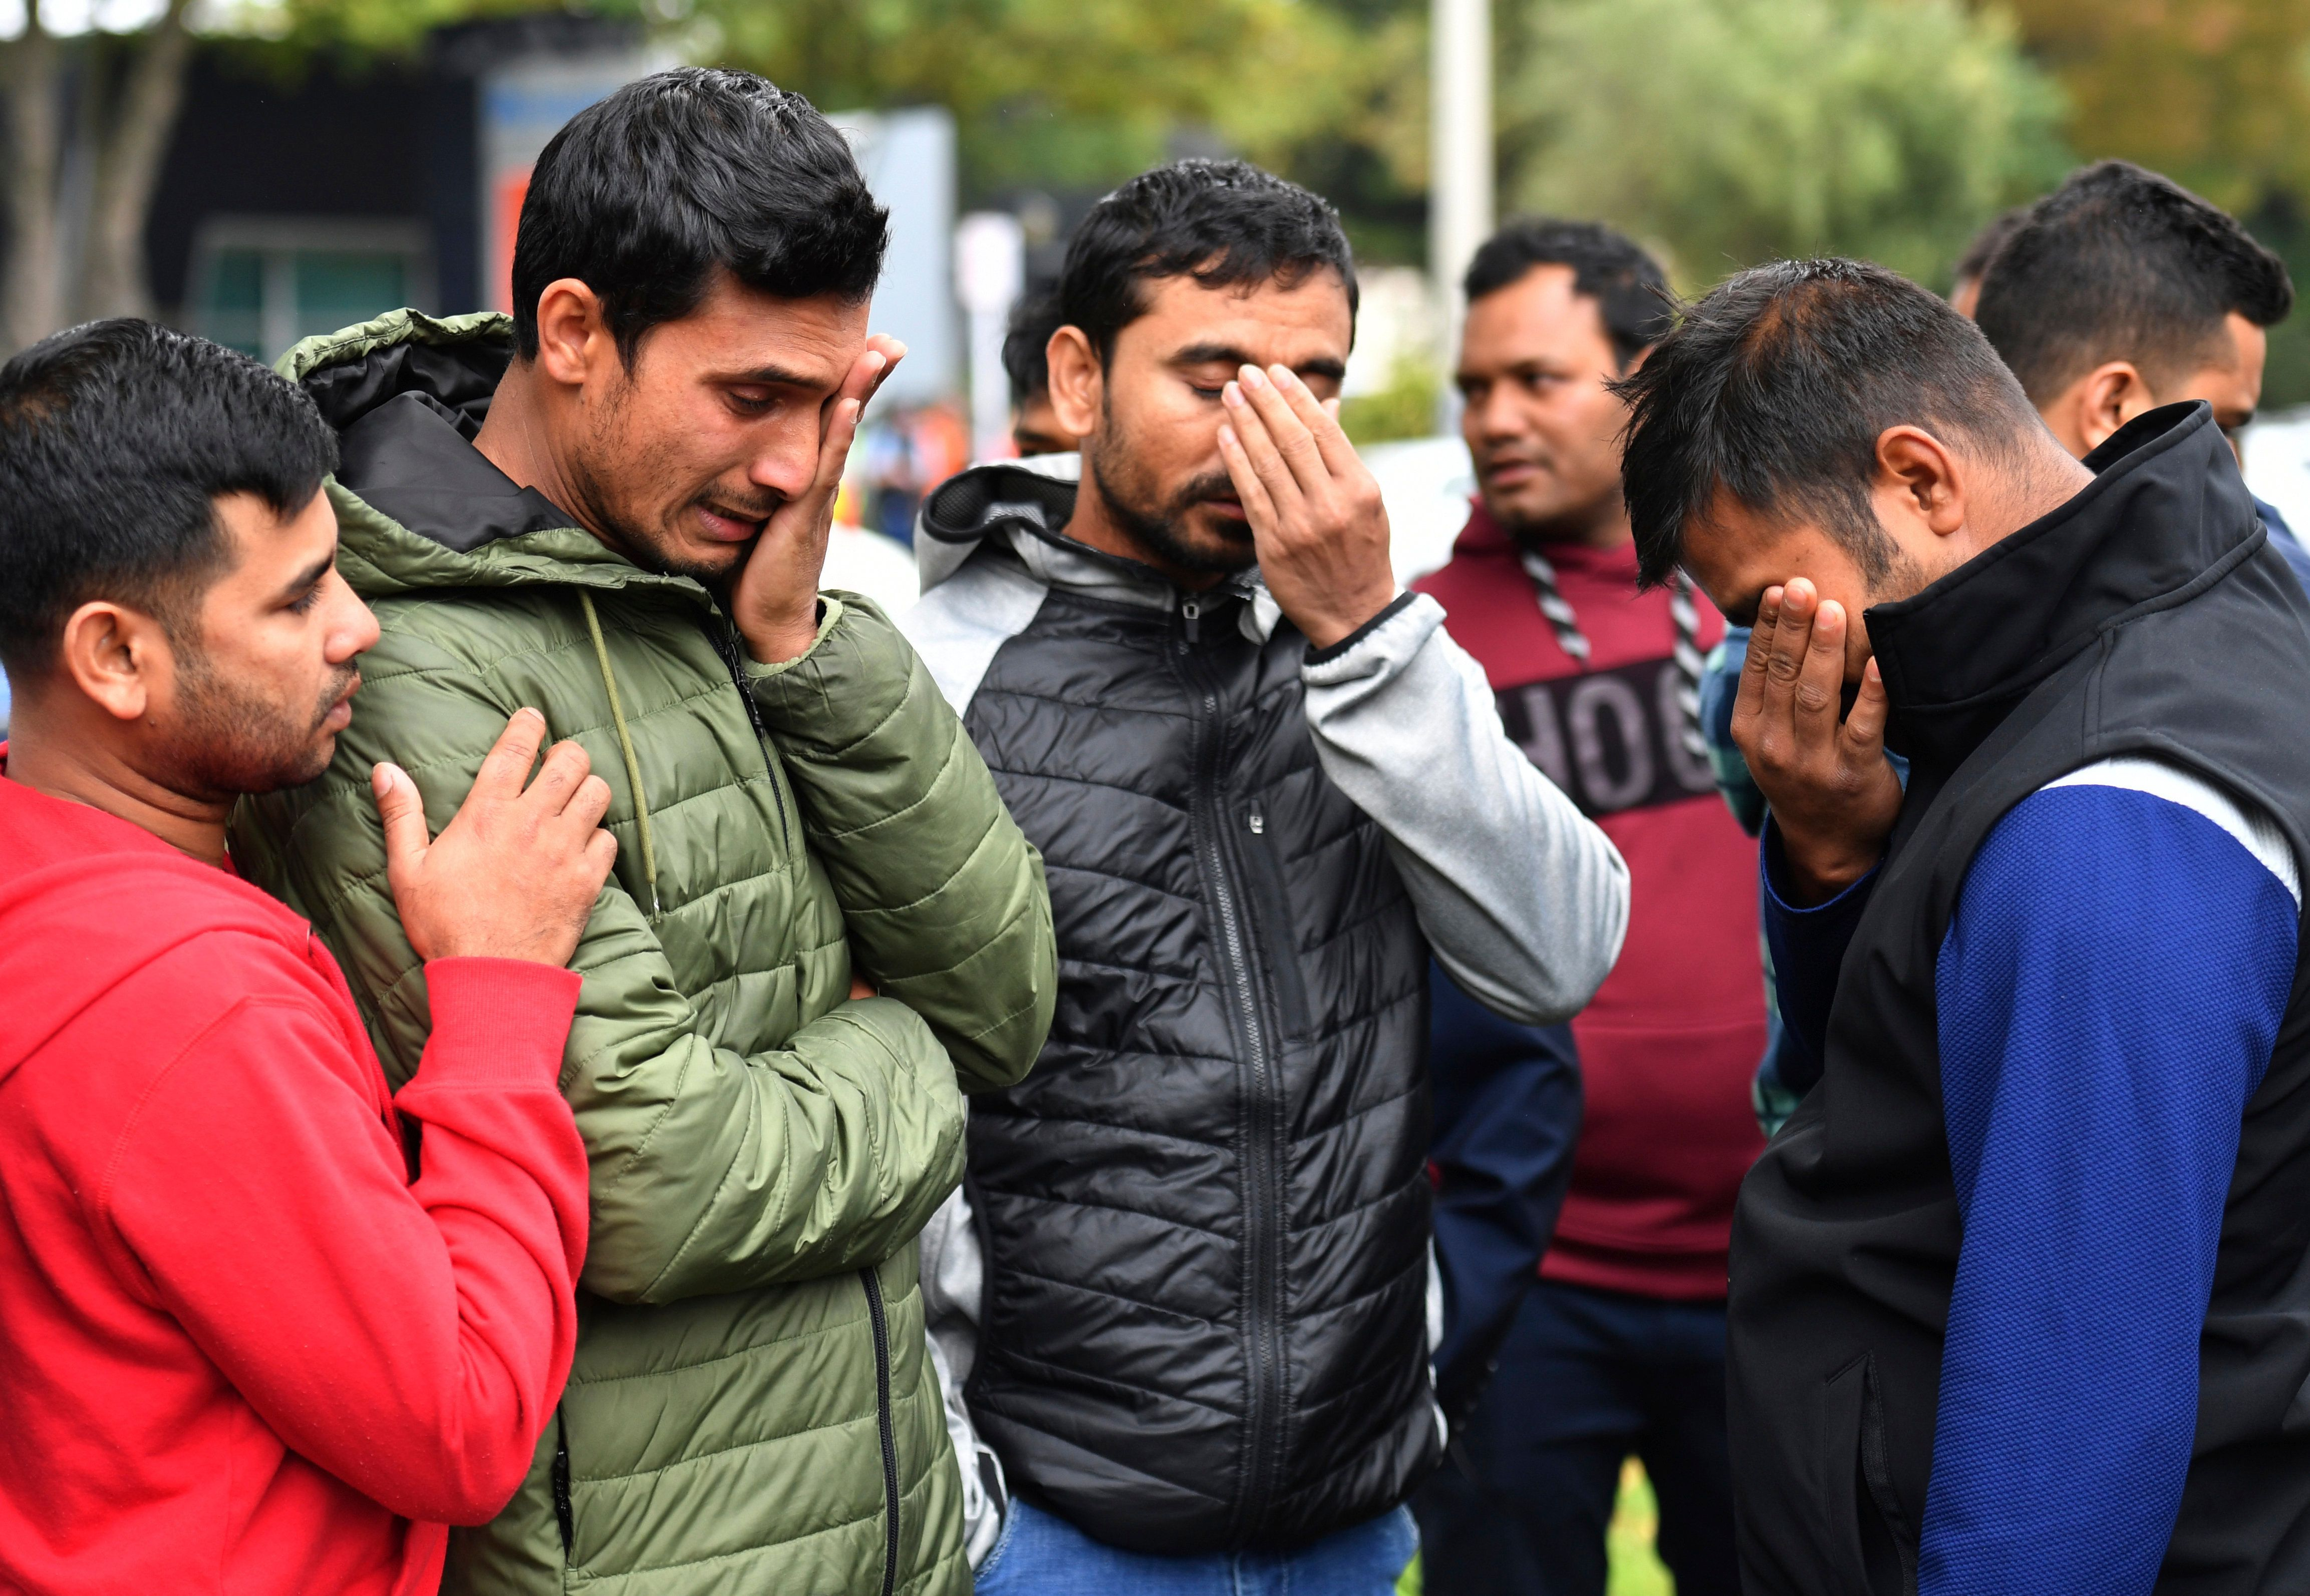 Friends of a missing man grieve outside a refuge center in Christchurch on